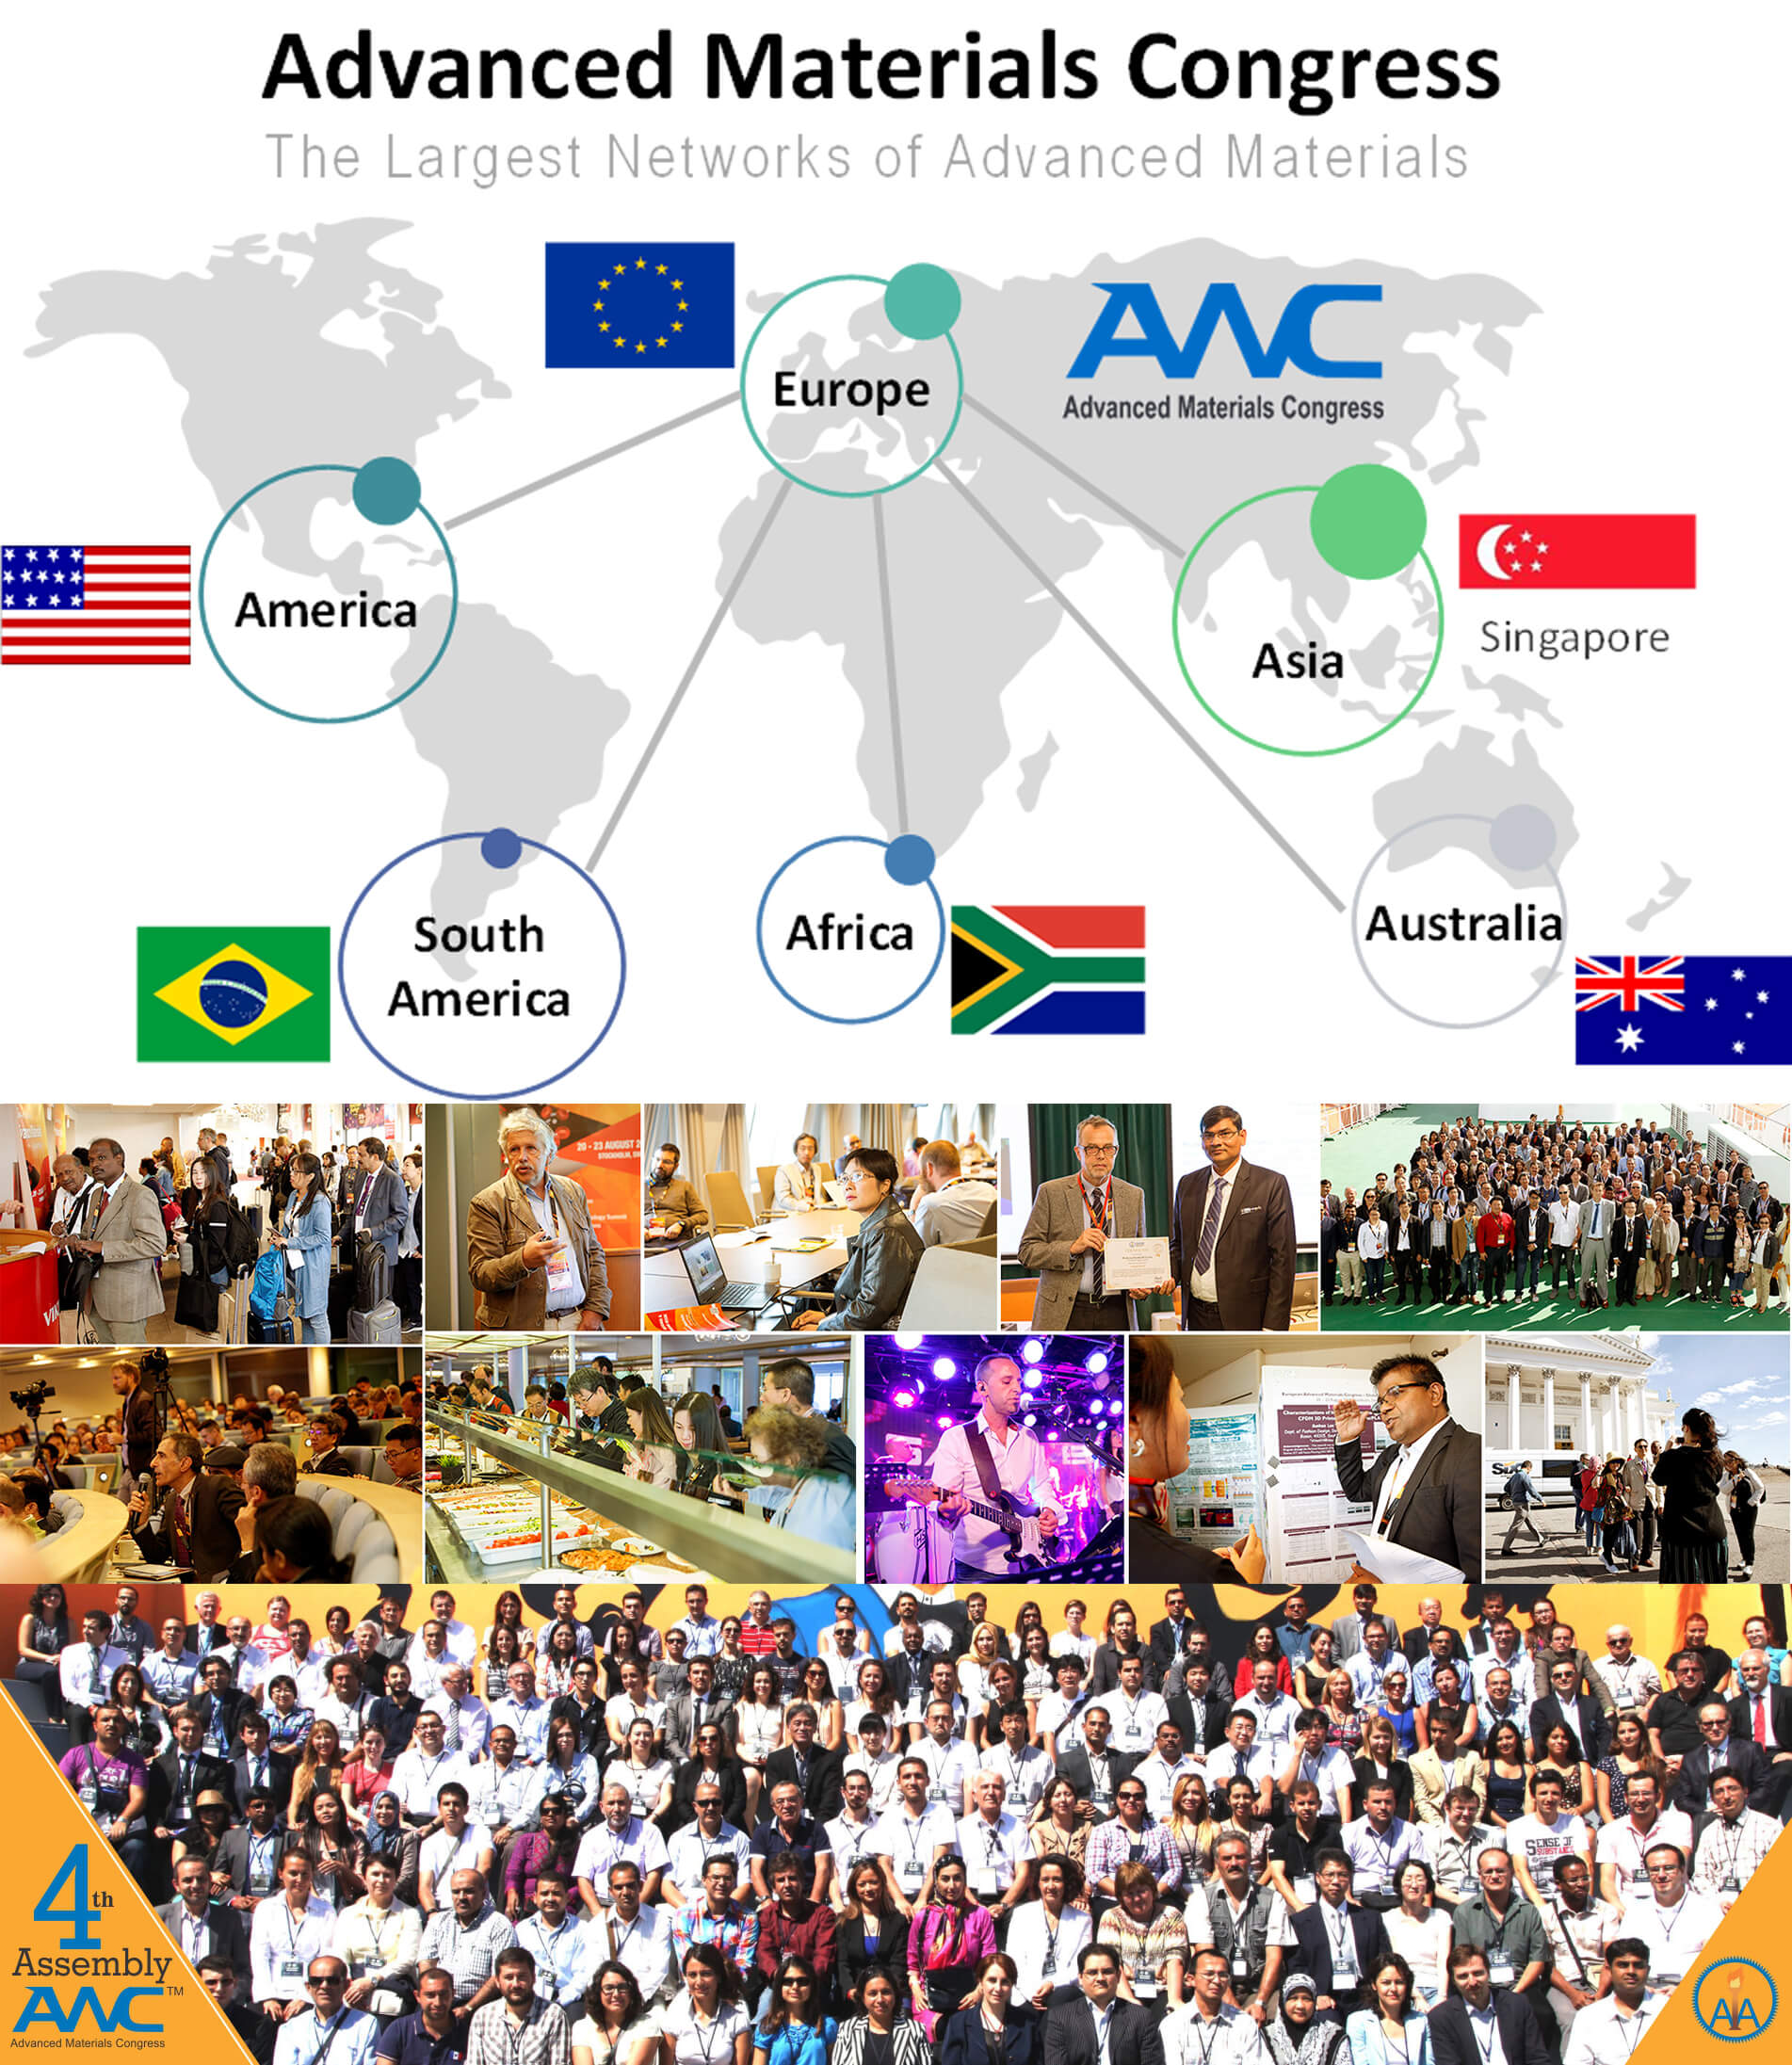 The AMC assemblies has created world largest network in the contemporary research fields of Advanced Materials Science